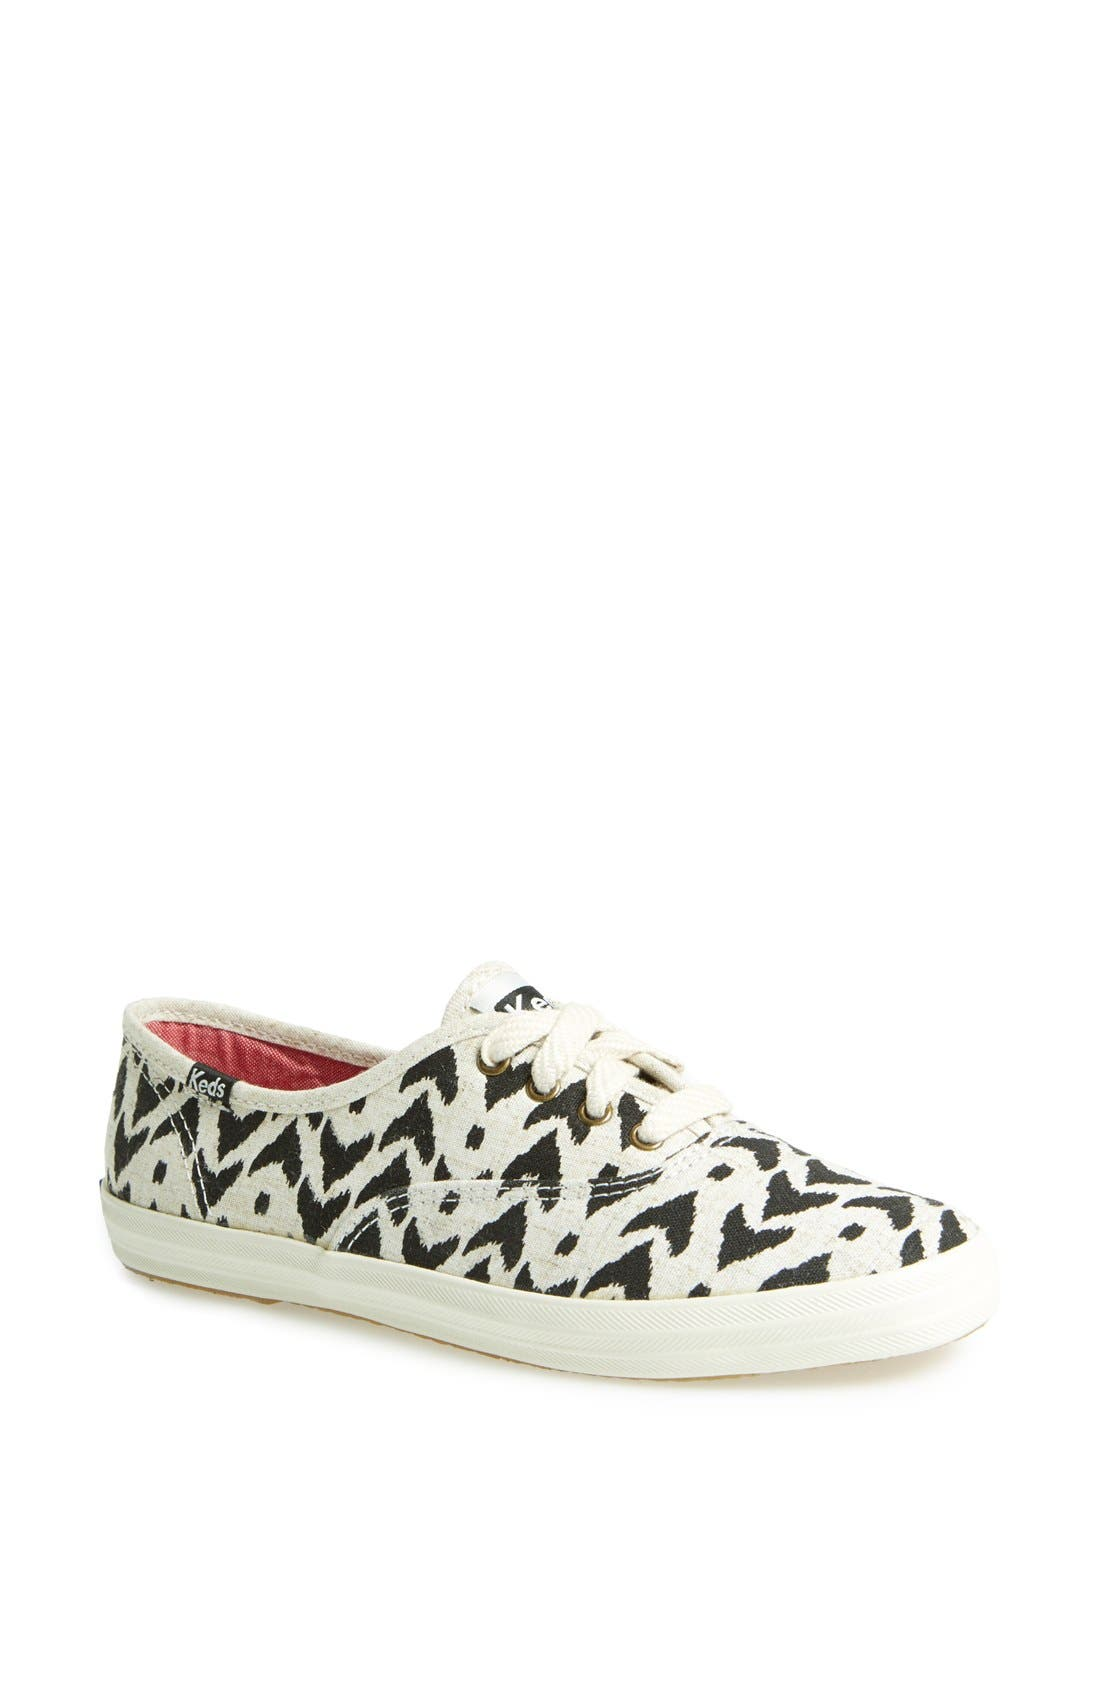 Alternate Image 1 Selected - Keds® 'Champion - Ikat' Sneaker (Women)